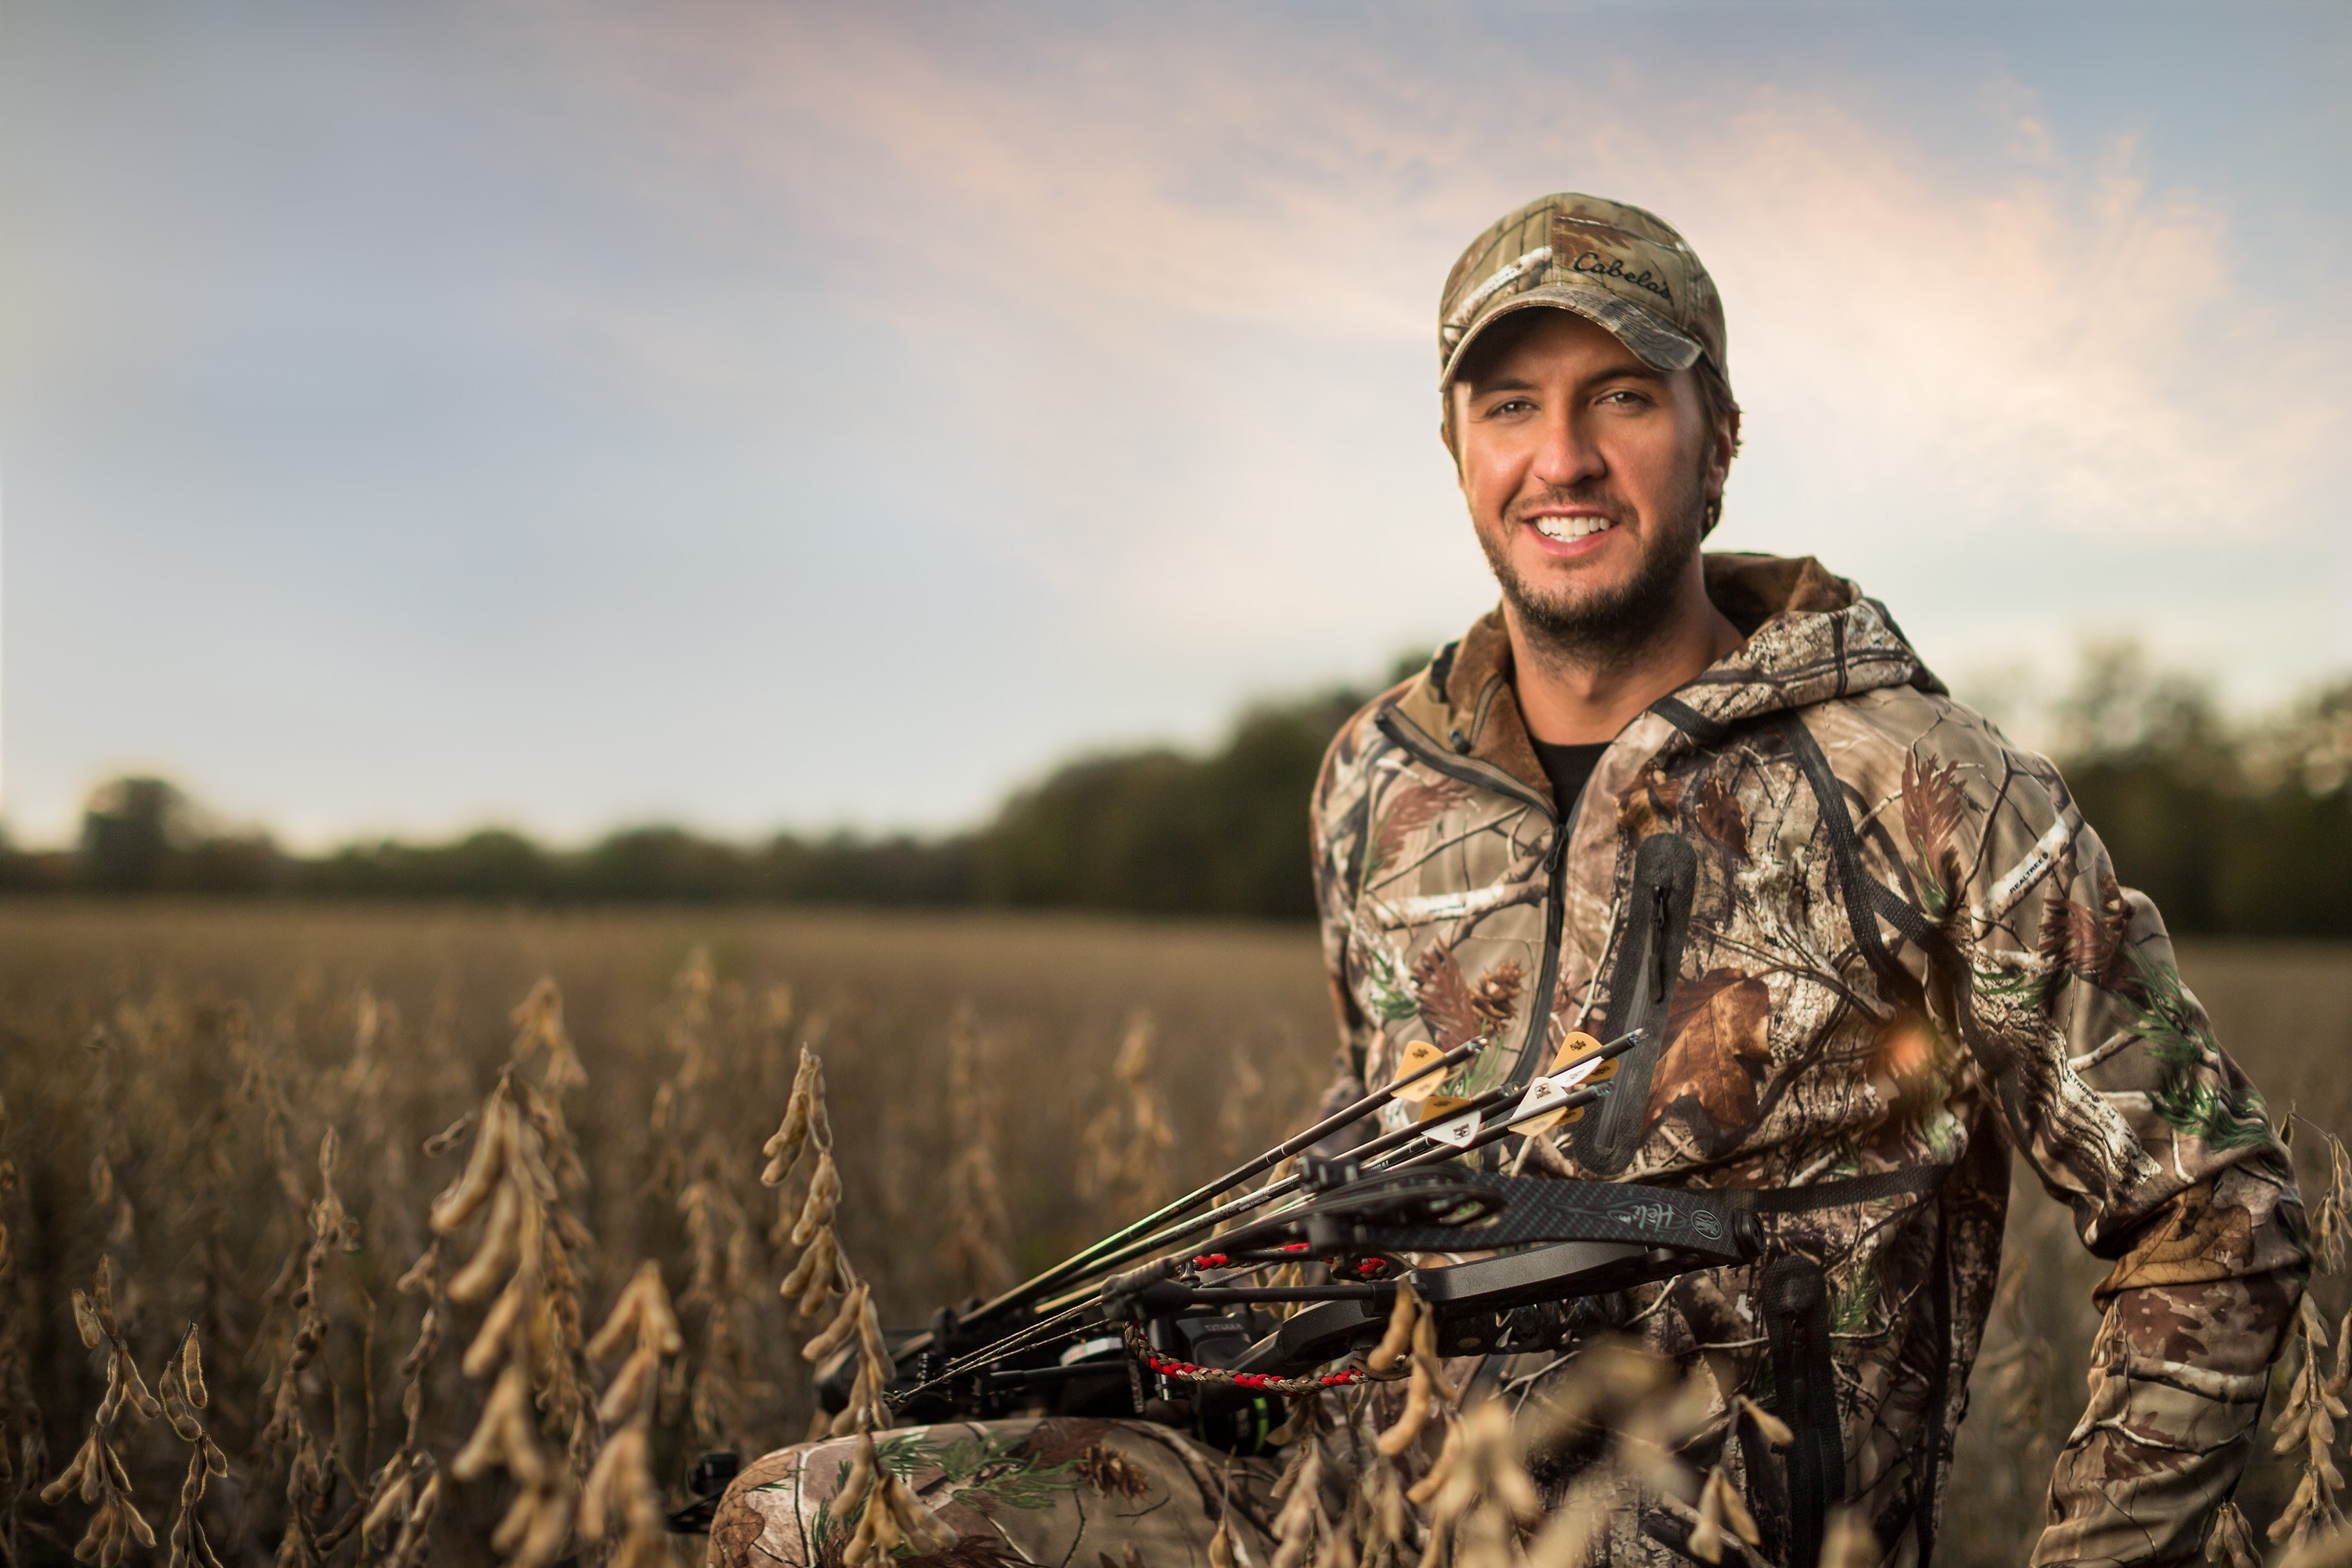 luke bryan wallpaper,hunting,soldier,duck,grass family,military camouflage